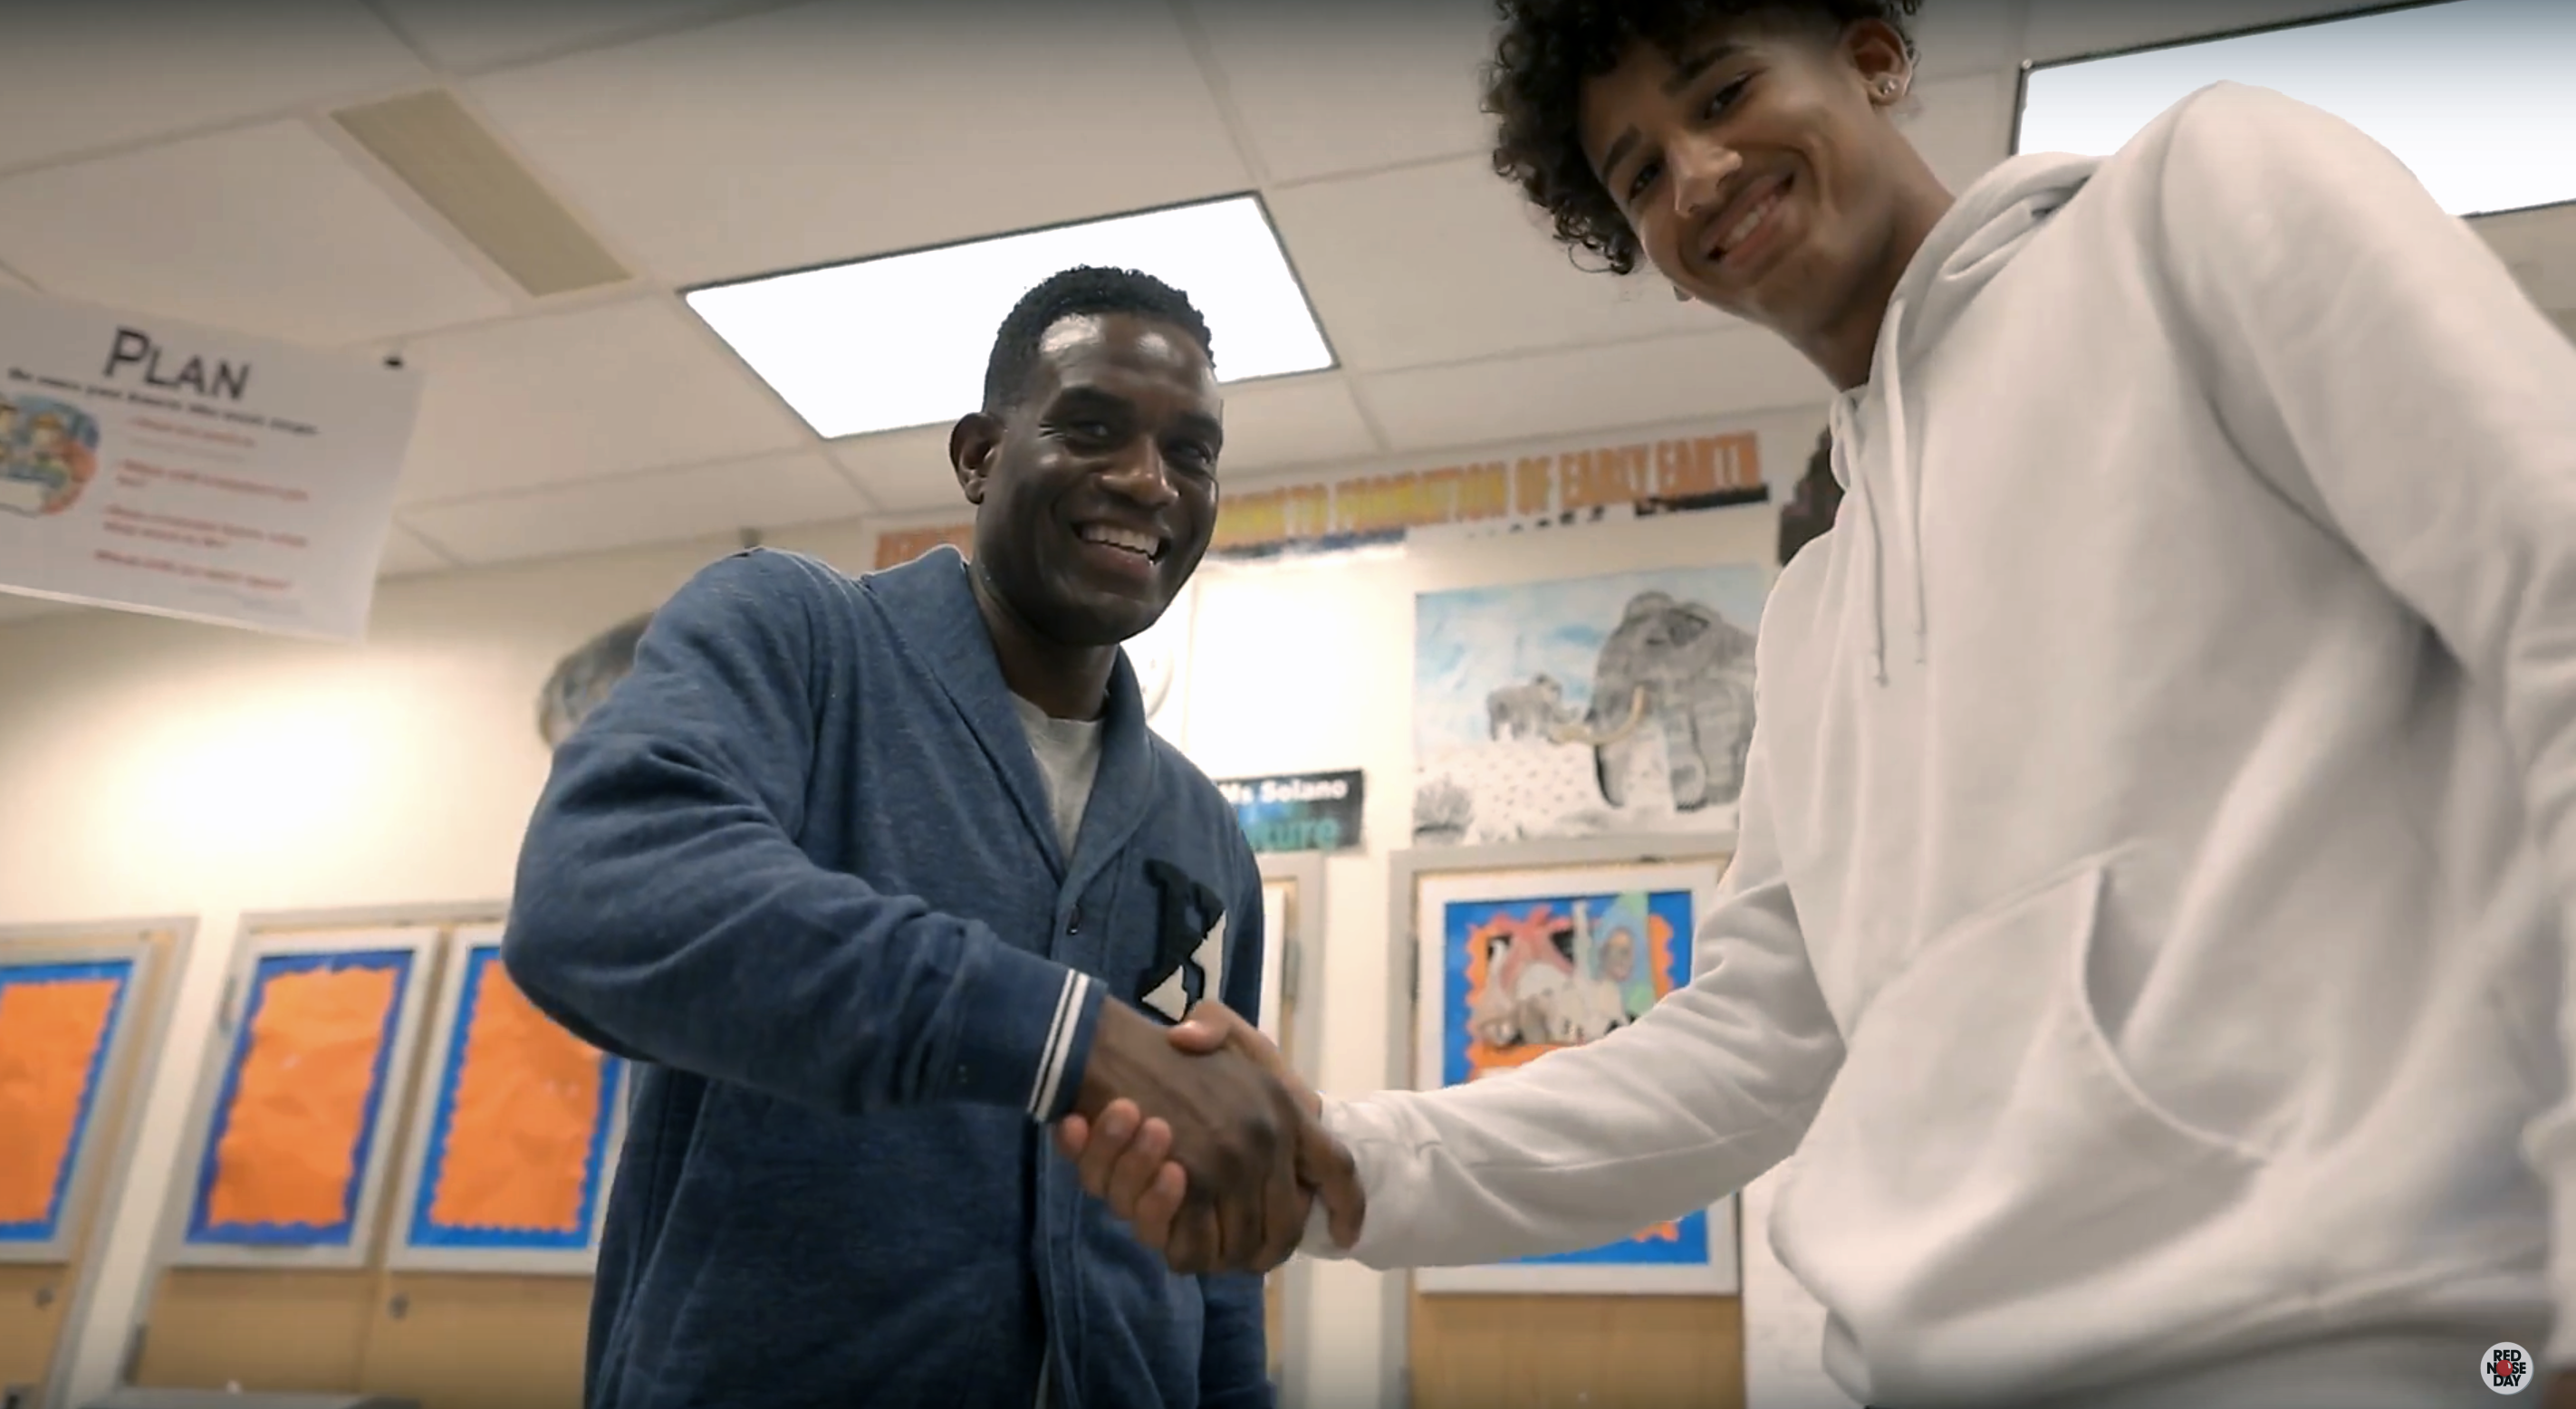 How Red Nose Day Helps: Robbie Earle Inspires On and Off the Soccer Field in the Bronx